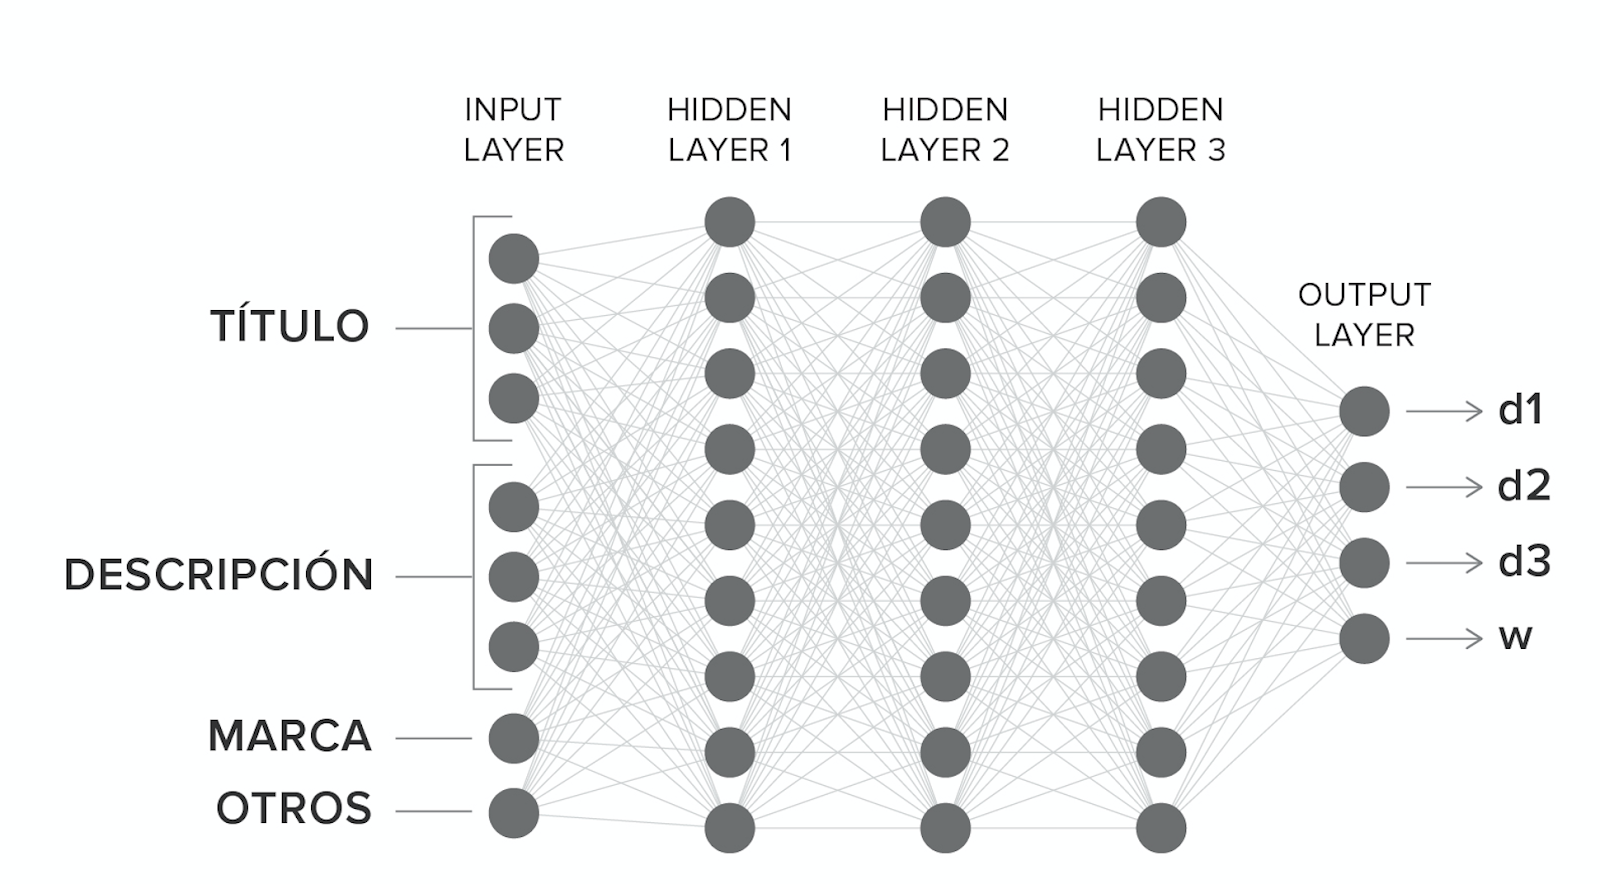 General architecture of the neural network model